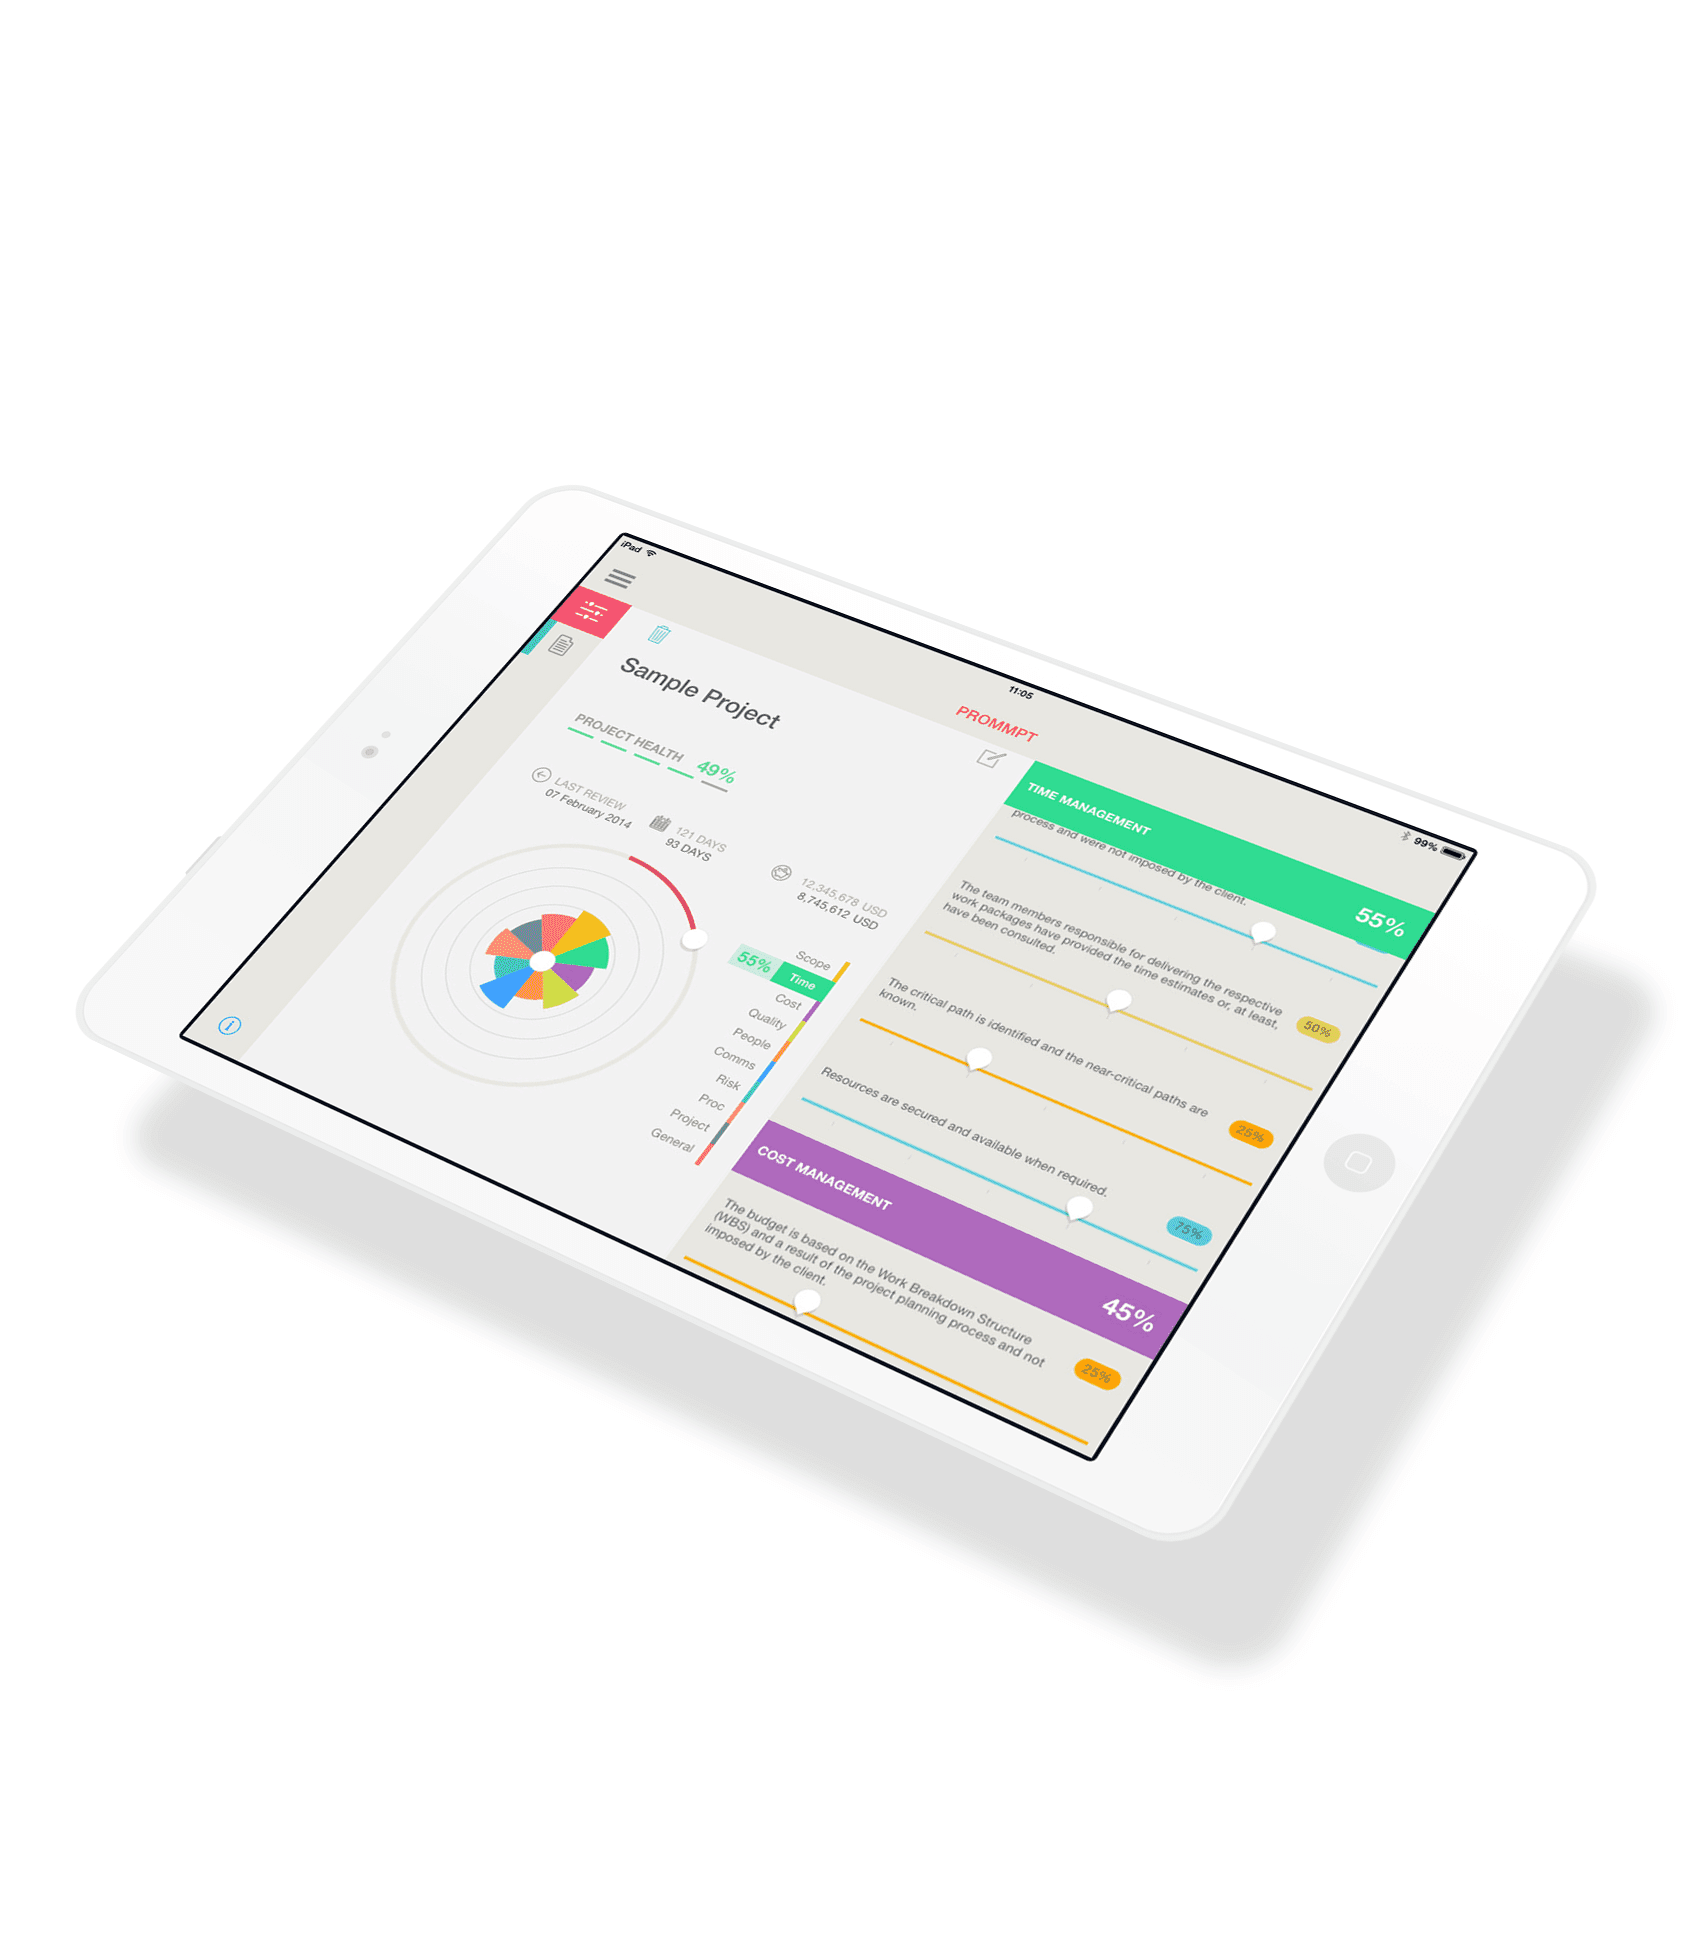 A lightweight iOS application suitable for building, construction, and IT projects